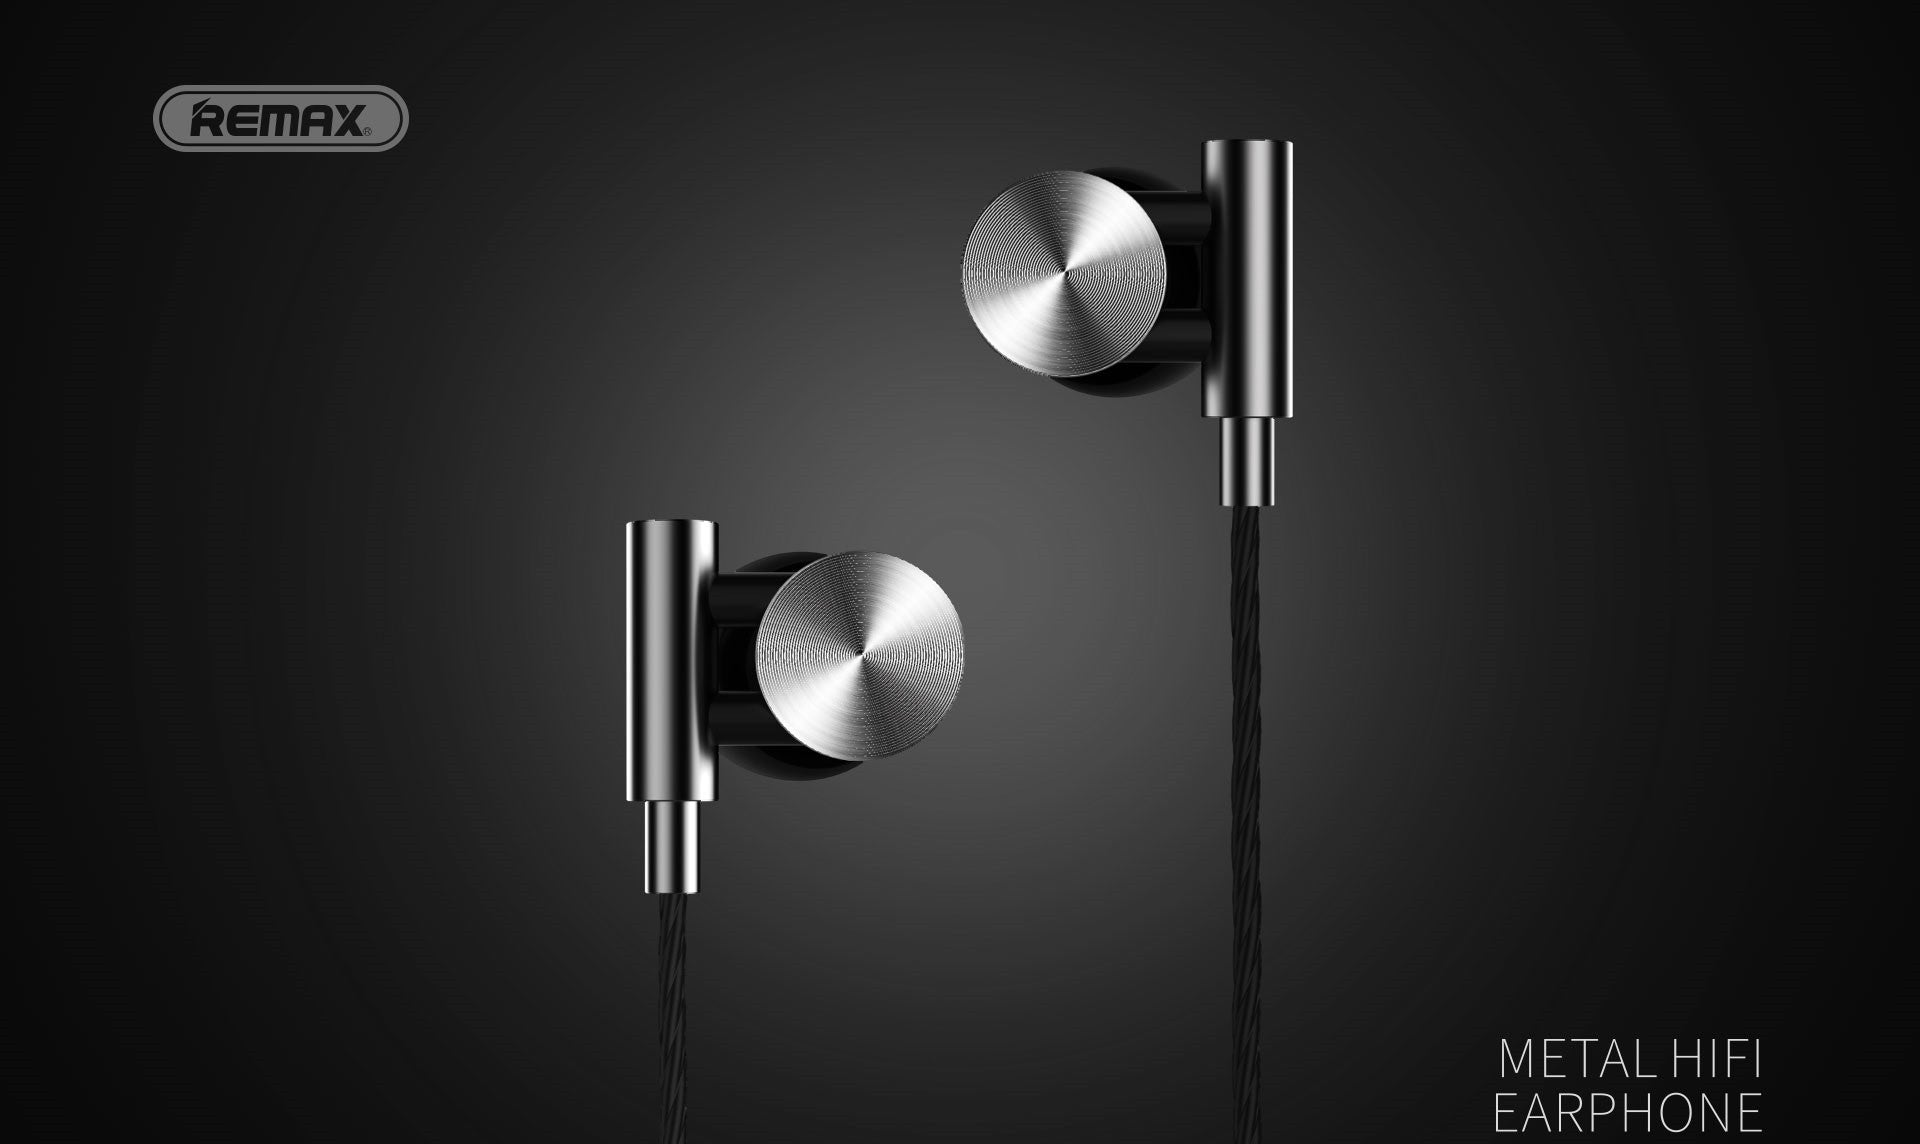 https://www.iremax.com/products/metal-hifi-wired-earphone-rm-530